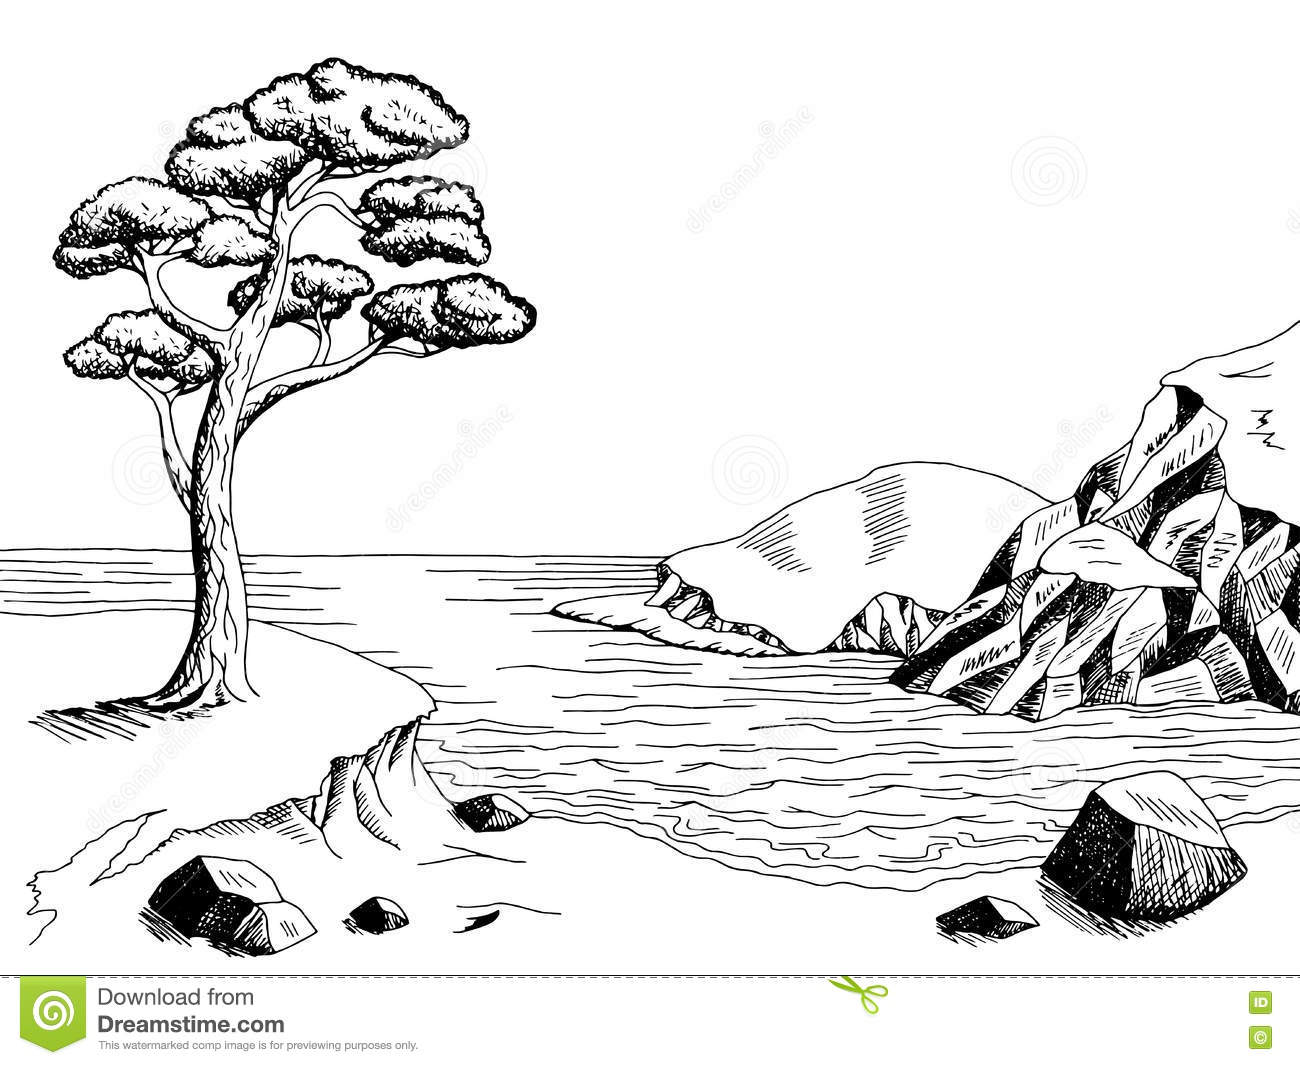 Landscape clipart black and white 5 » Clipart Station.